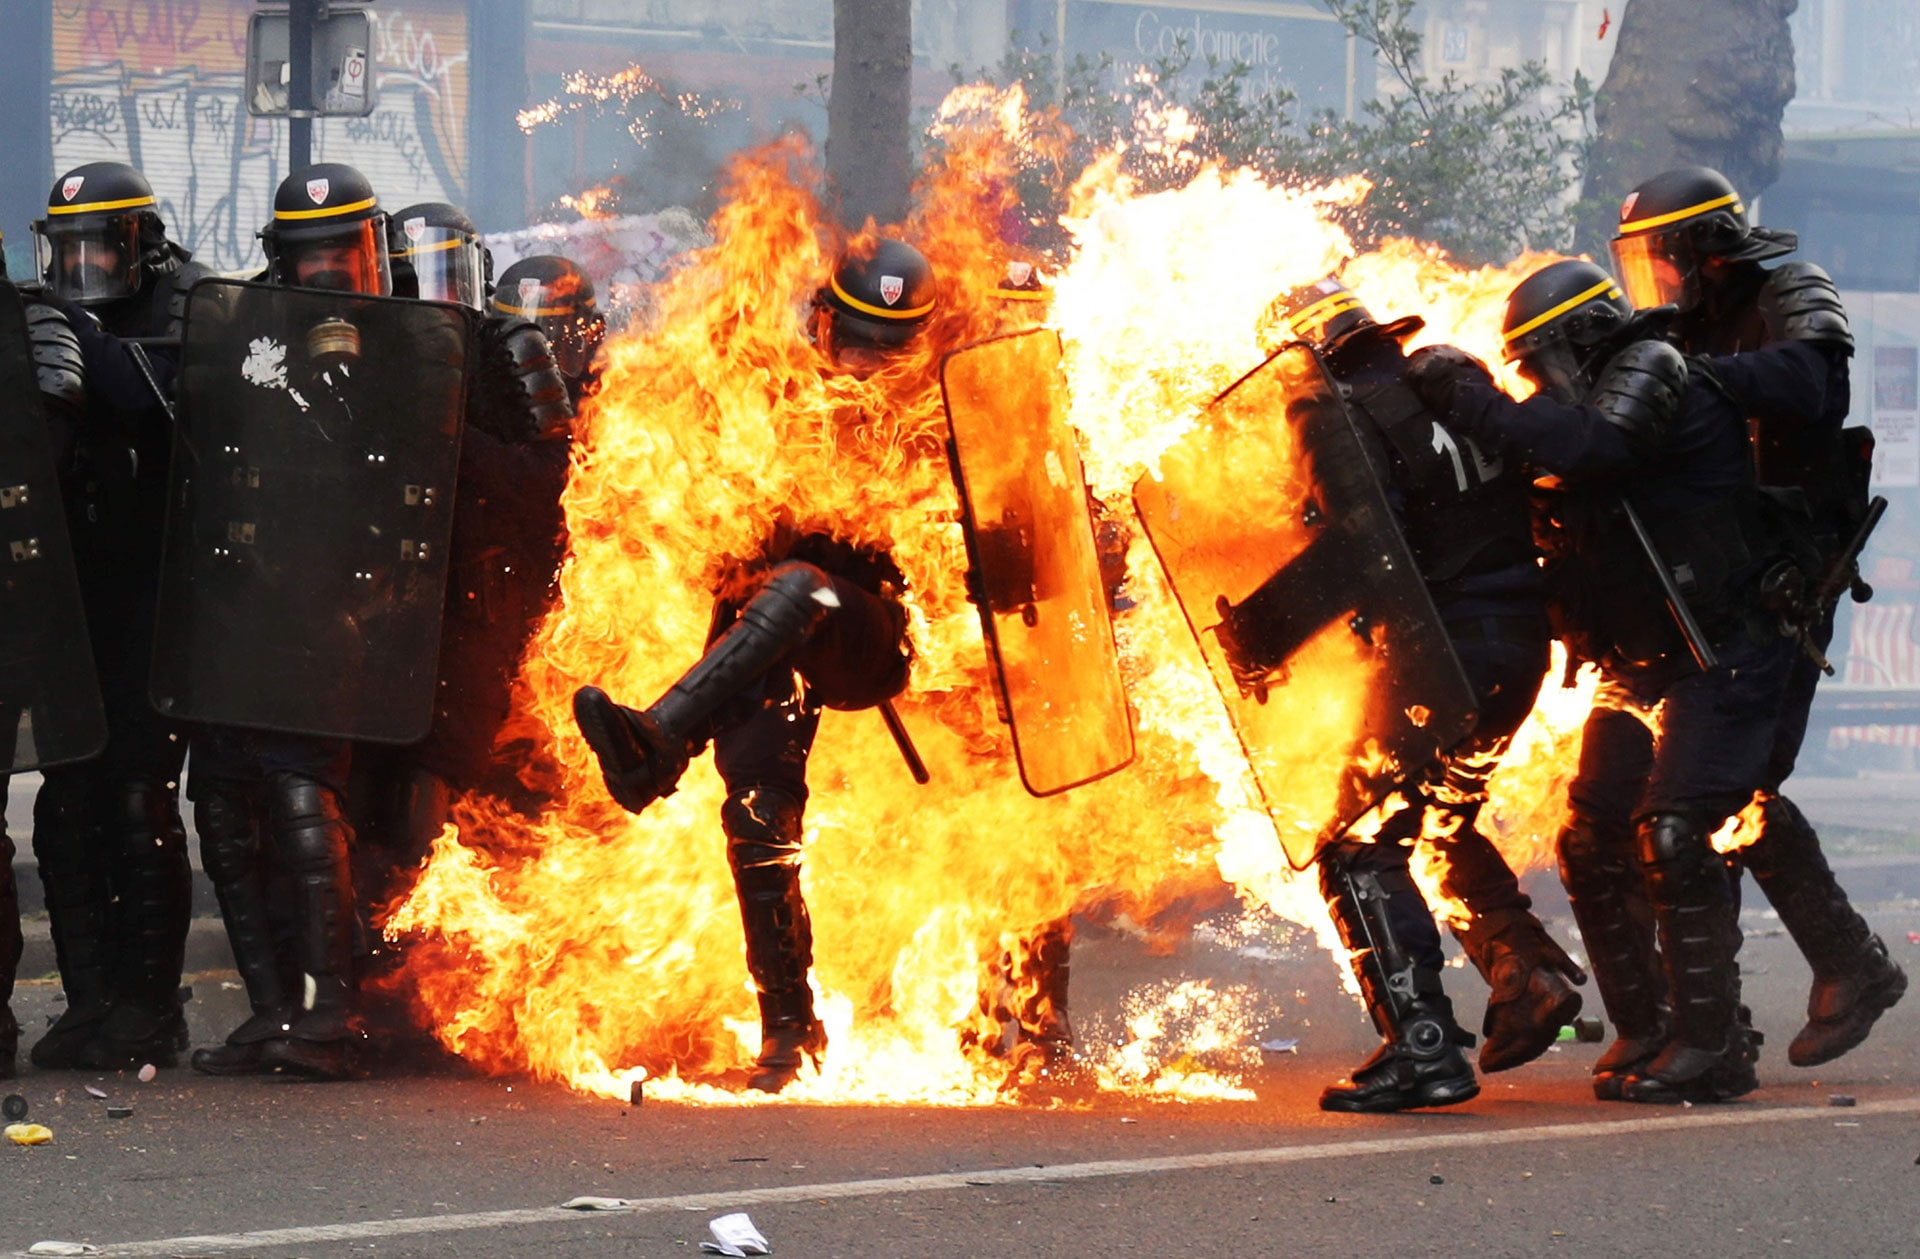 Flames engulf French police officers